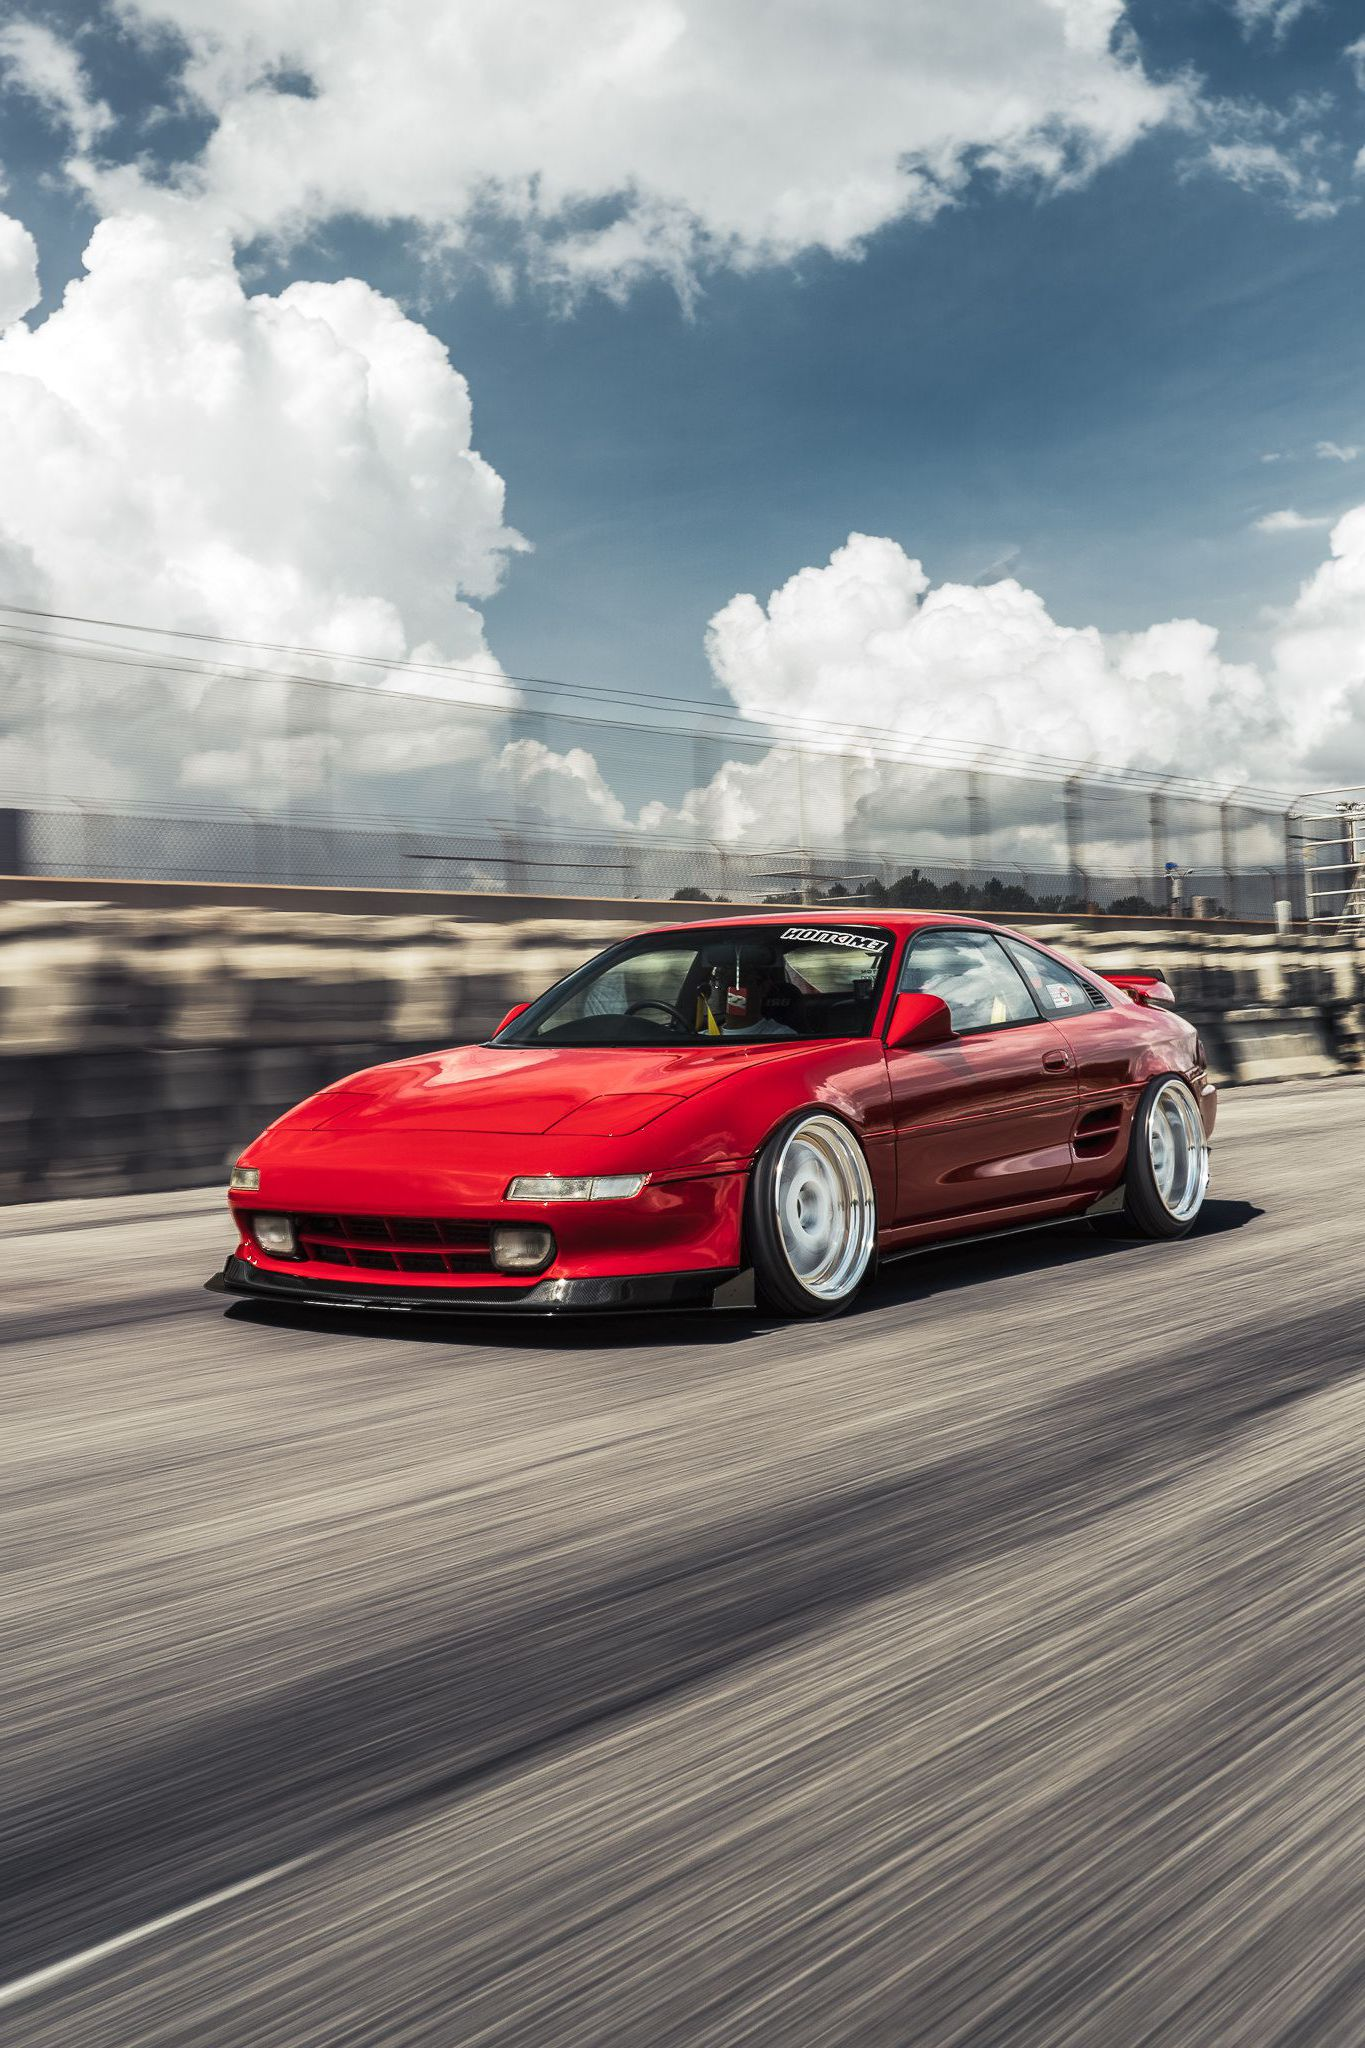 MR2 at speed